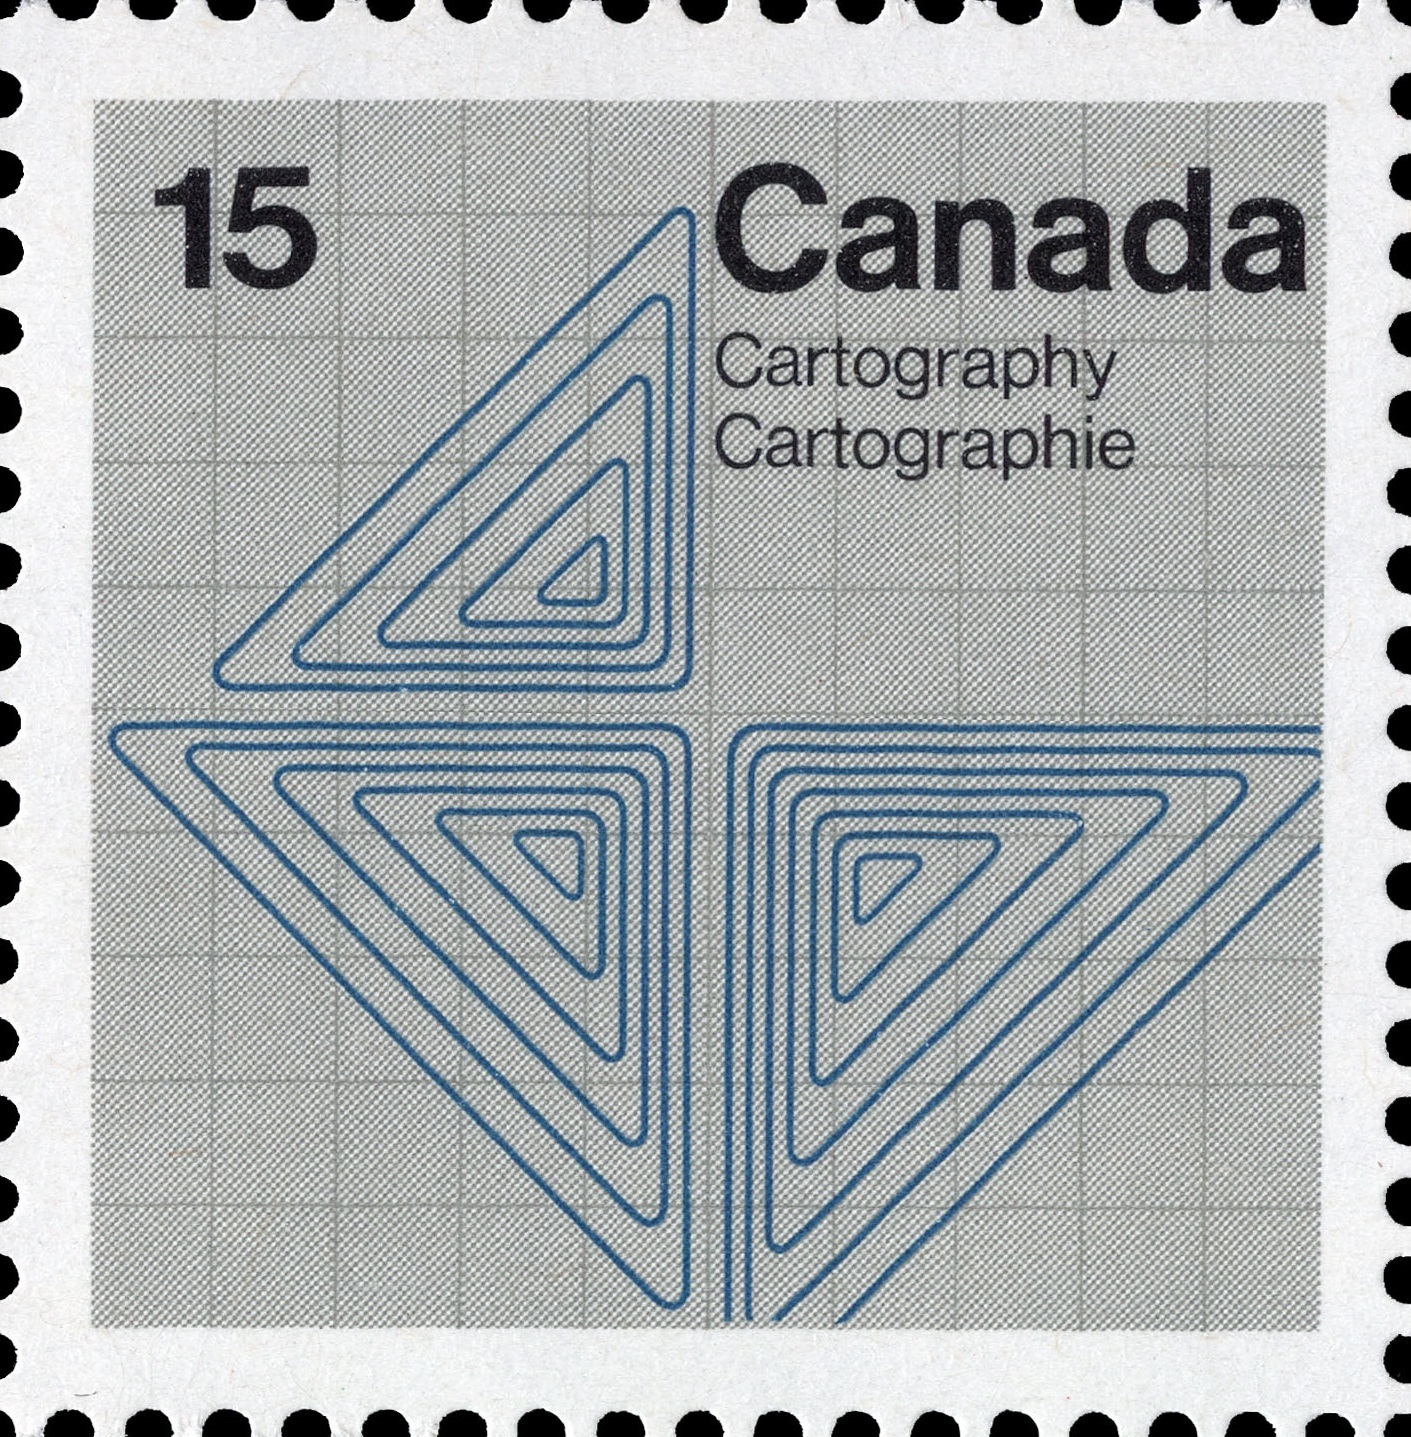 Cartography Canada Postage Stamp